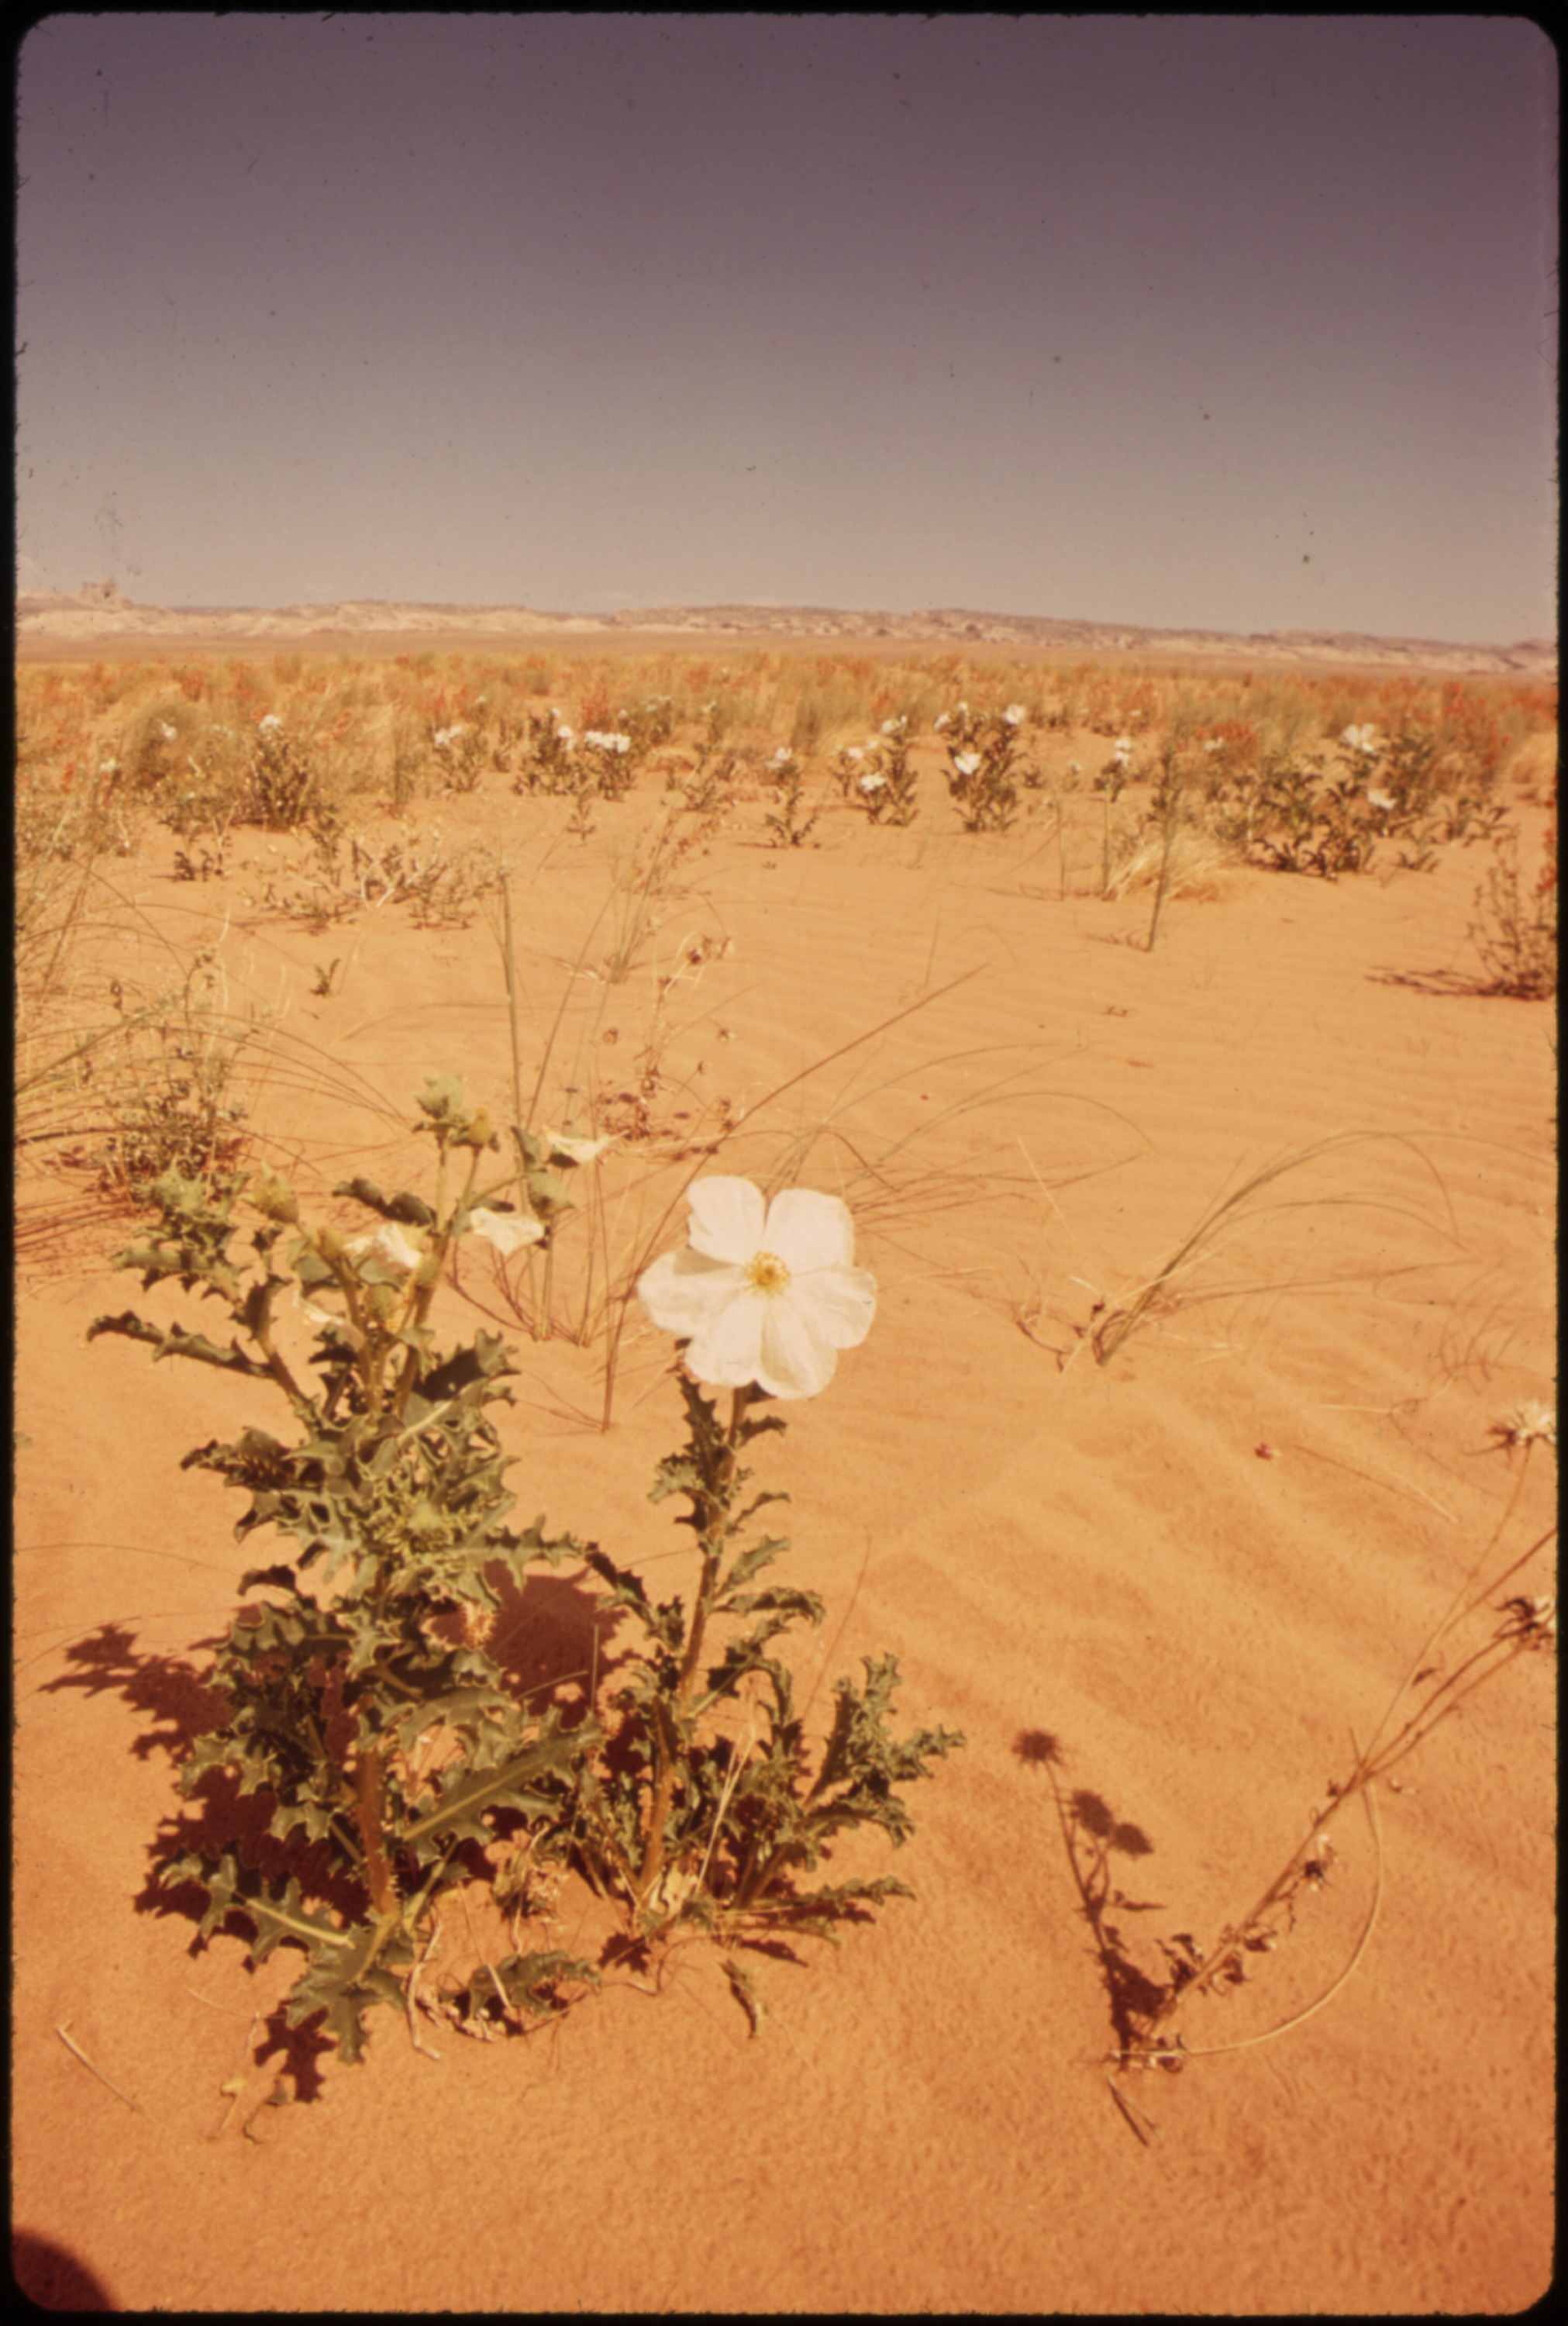 WHITE POPPY, DESERT FLOWER - NARA - 544879